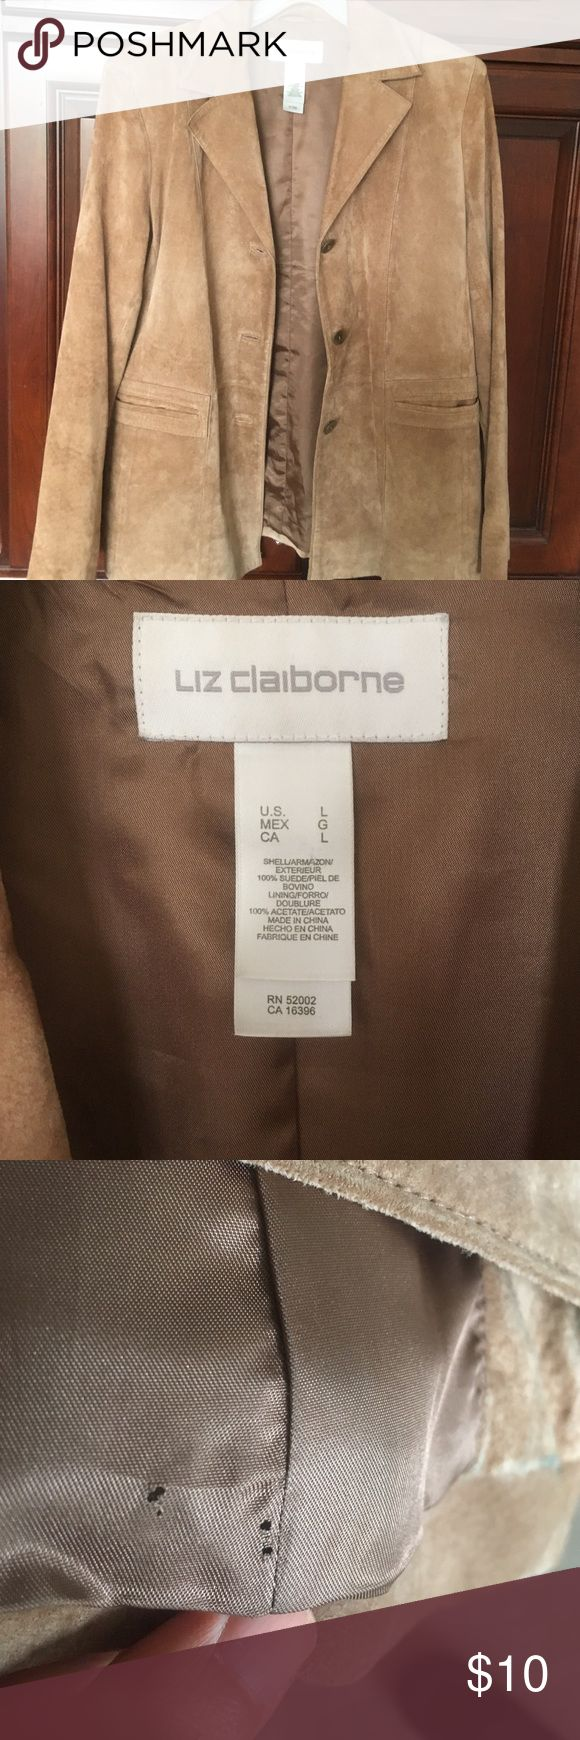 Liz clairborne siede blazer 100% suede...Has  an inside hole from previous dry cleaning tag as seen on pics and pen mark at the back...needs to be dry cleaned again maybe they can remove the pen mark. Price reflects 😭 Liz Claiborne Jackets & Coats Blazers